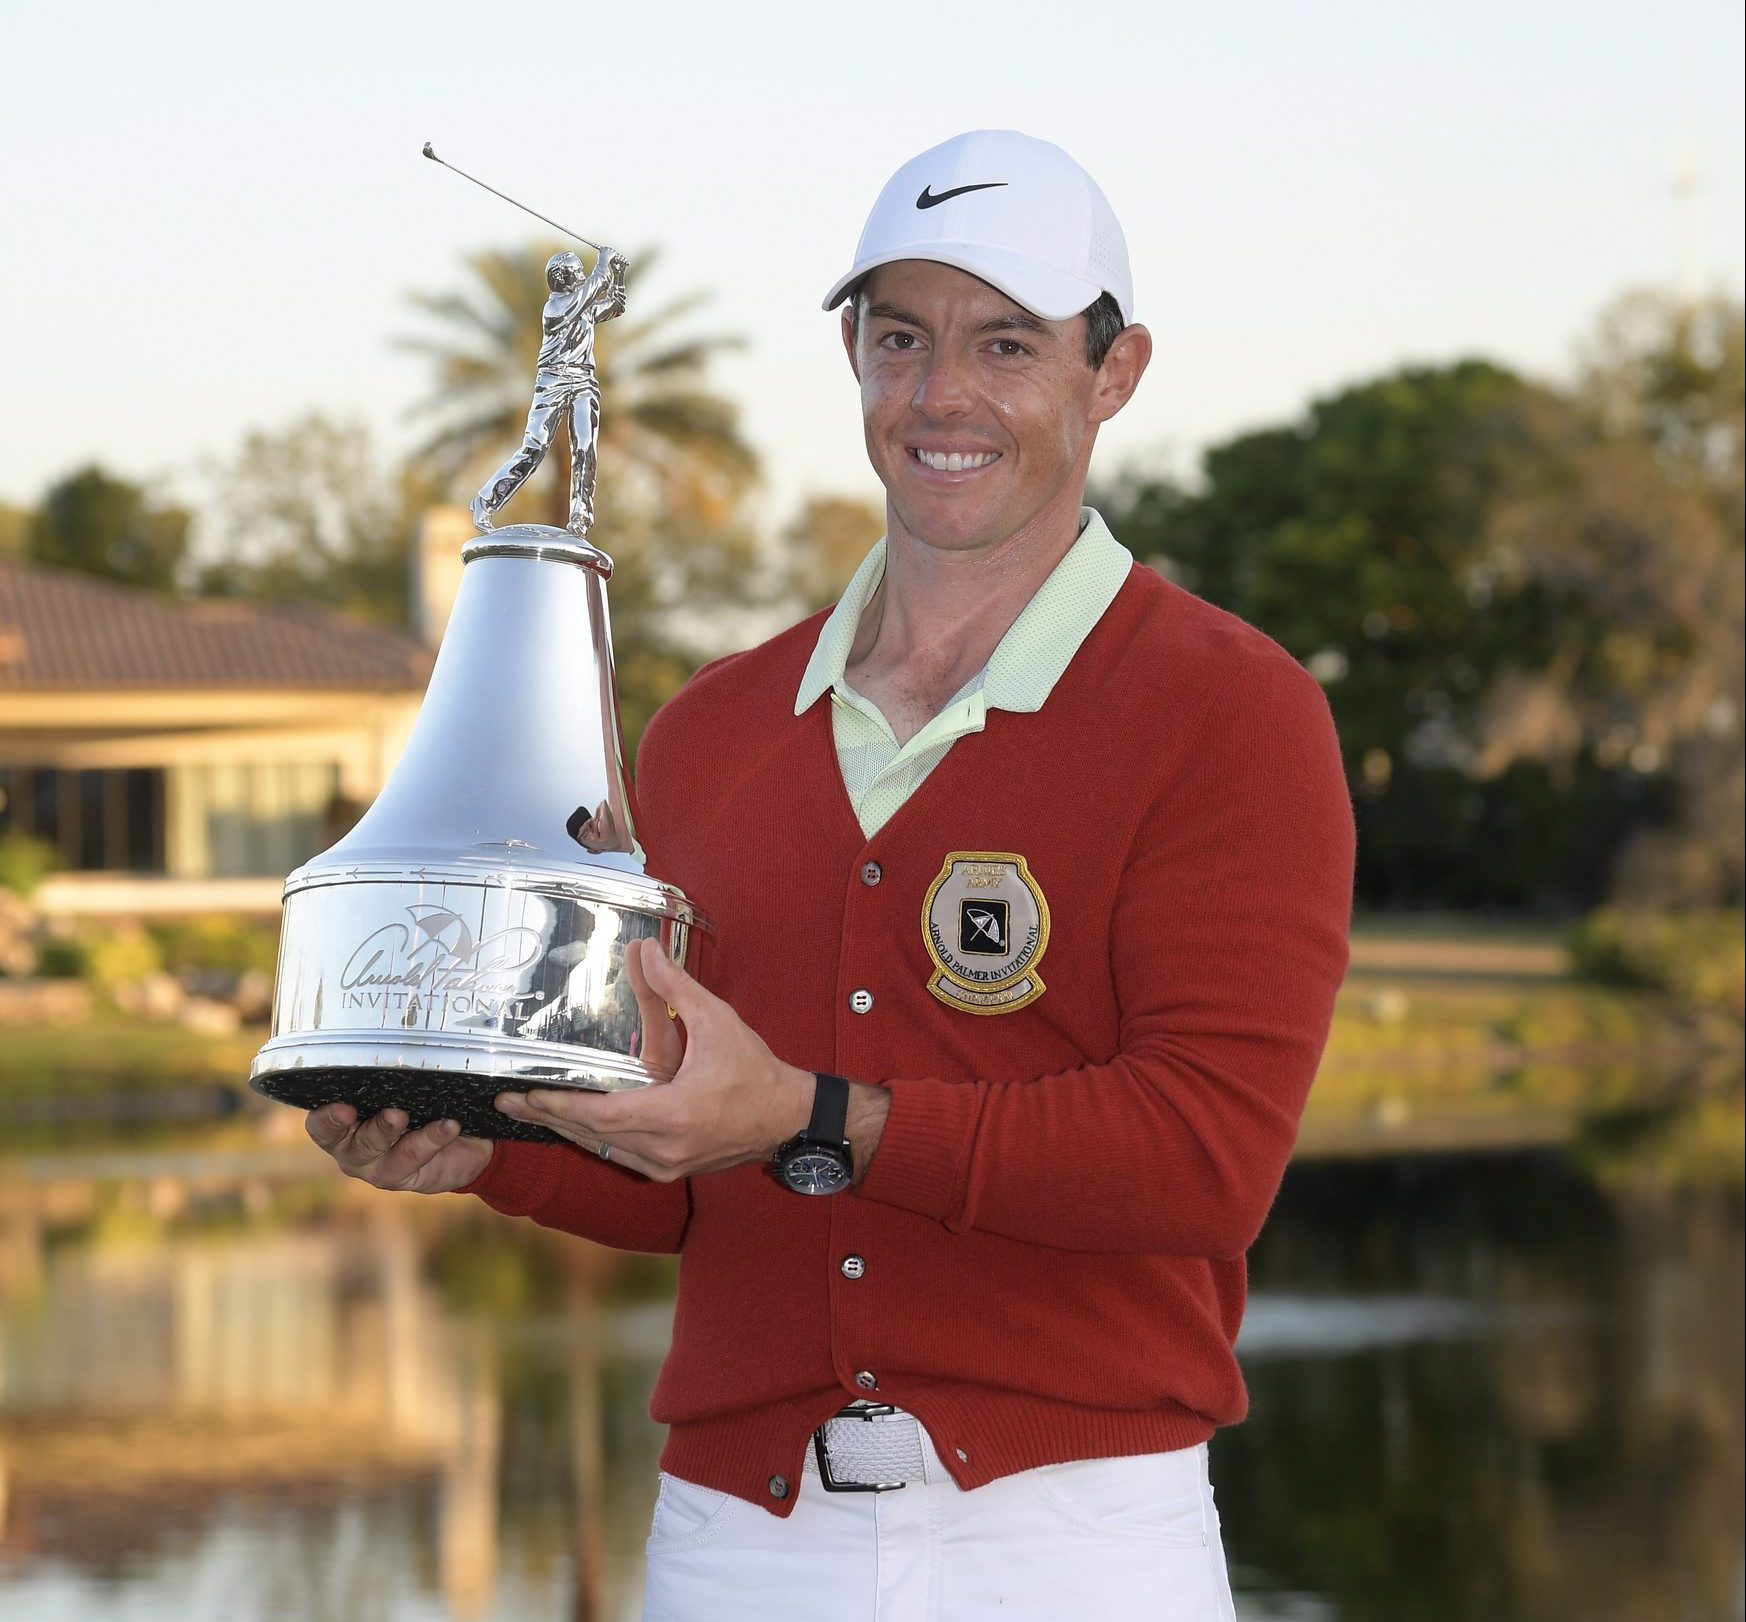 Rory McIlroy with the champion trophy at the 2018 Arnold Palmer Invitational